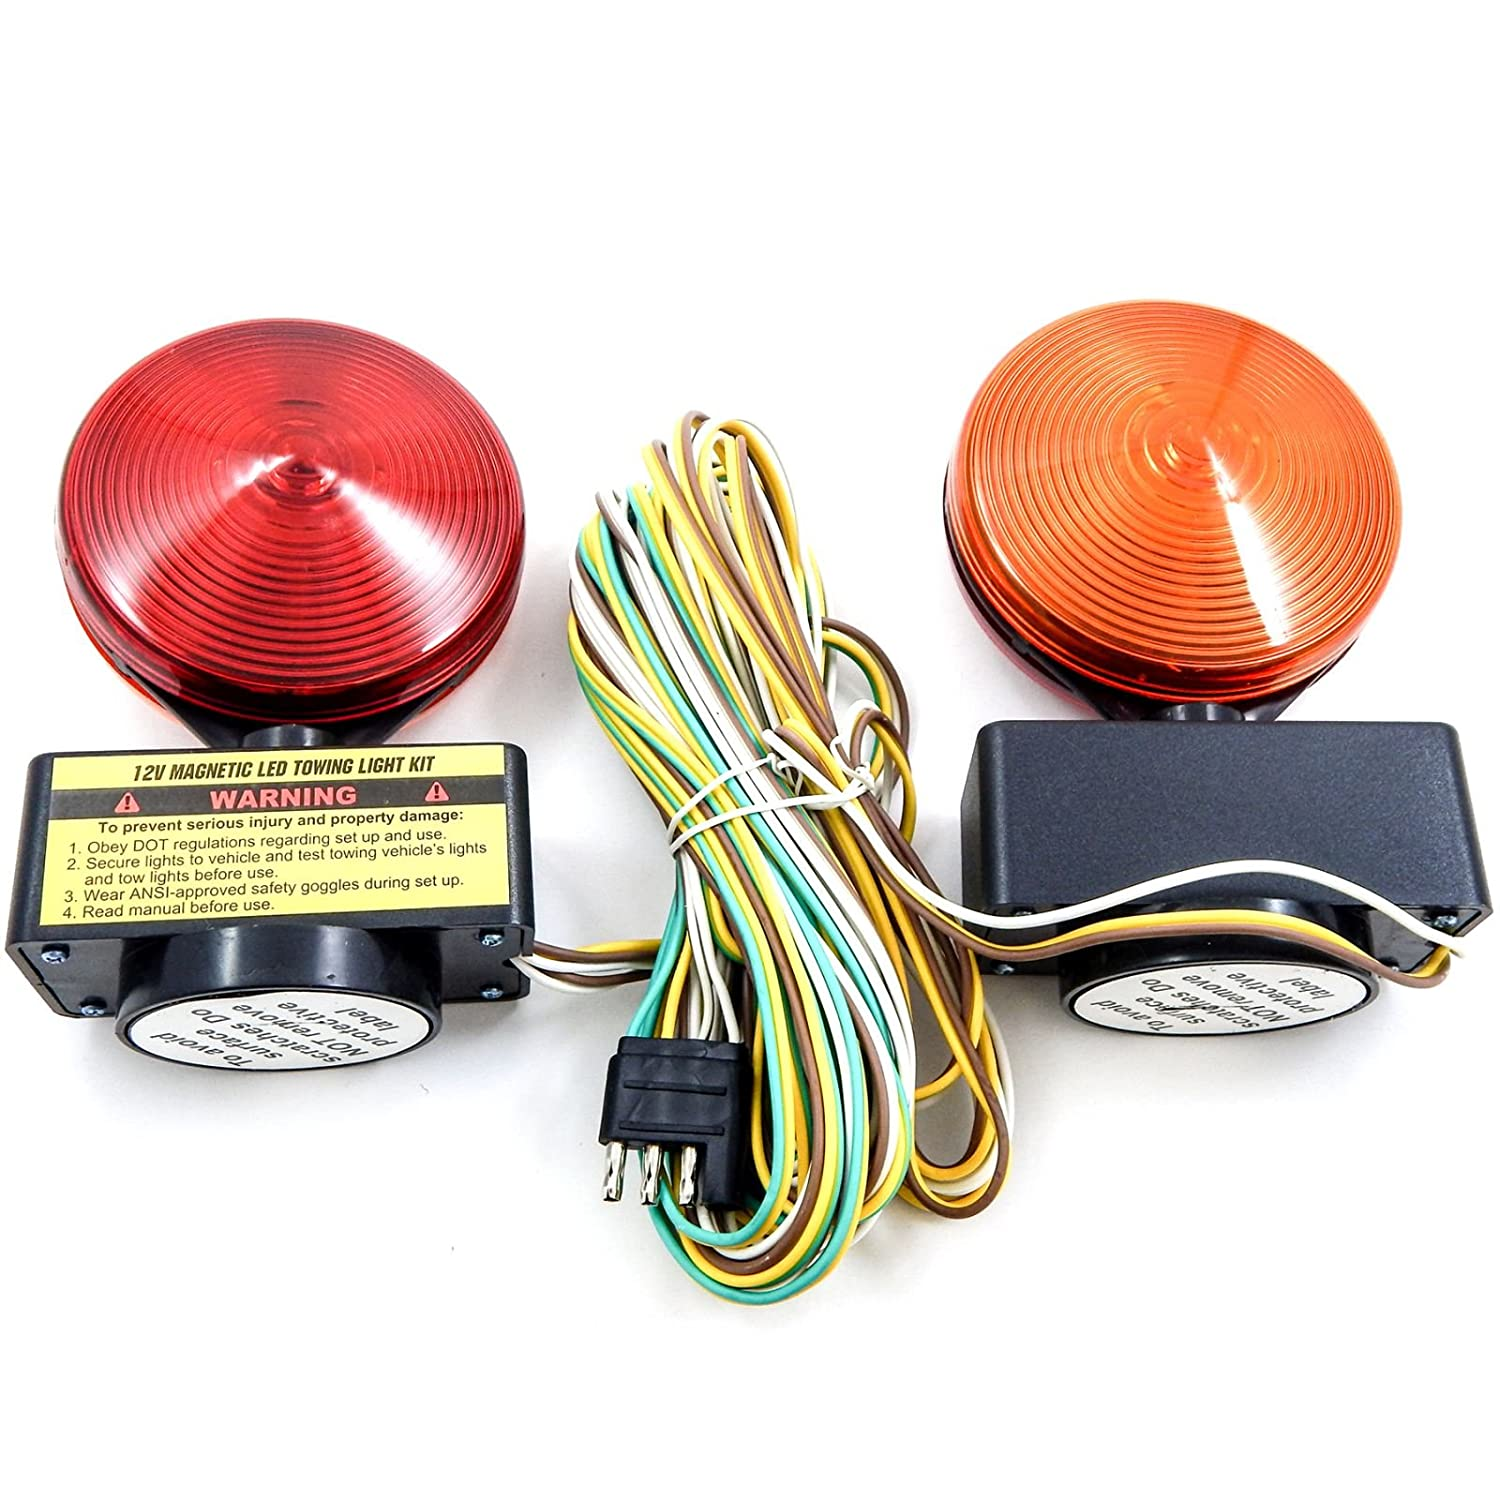 Red Hound Auto Magnetic Led Trailer Towing Light Kit Pin Boat Wiring Diagram Autos Post Magnet Mount Tow Tail Brake Lights 12v 40 Wire Harness Automotive